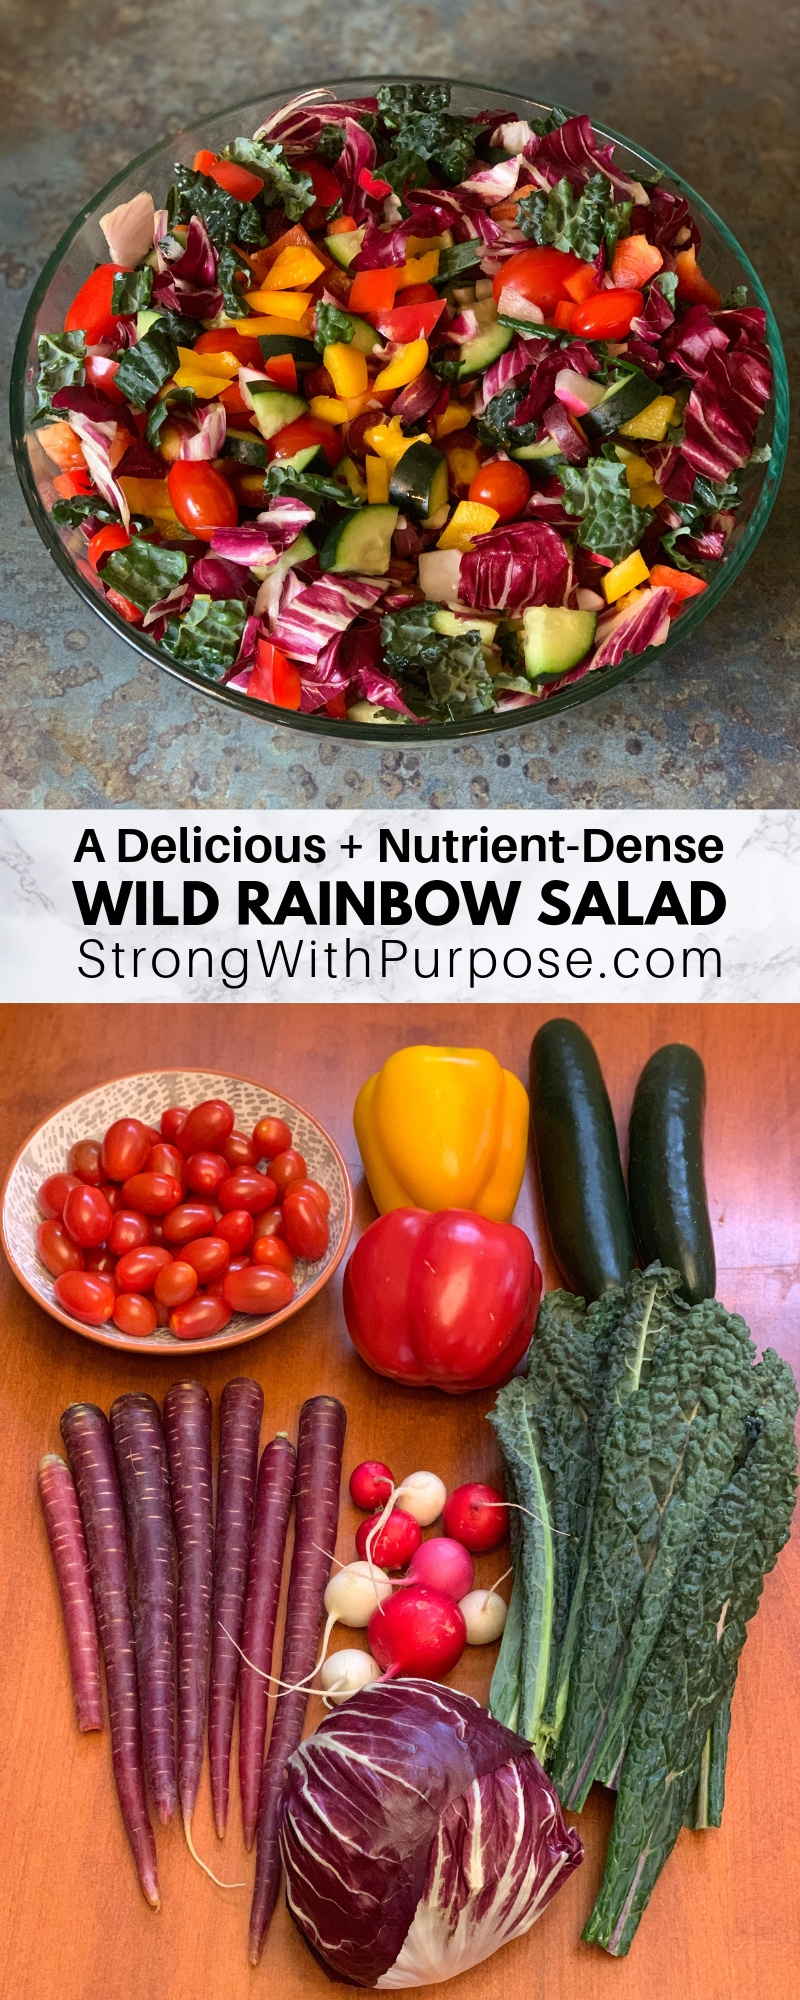 A Delicious & Nutrient-Dense Wild Rainbow Salad - Simple Recipe by Strong with Purpose